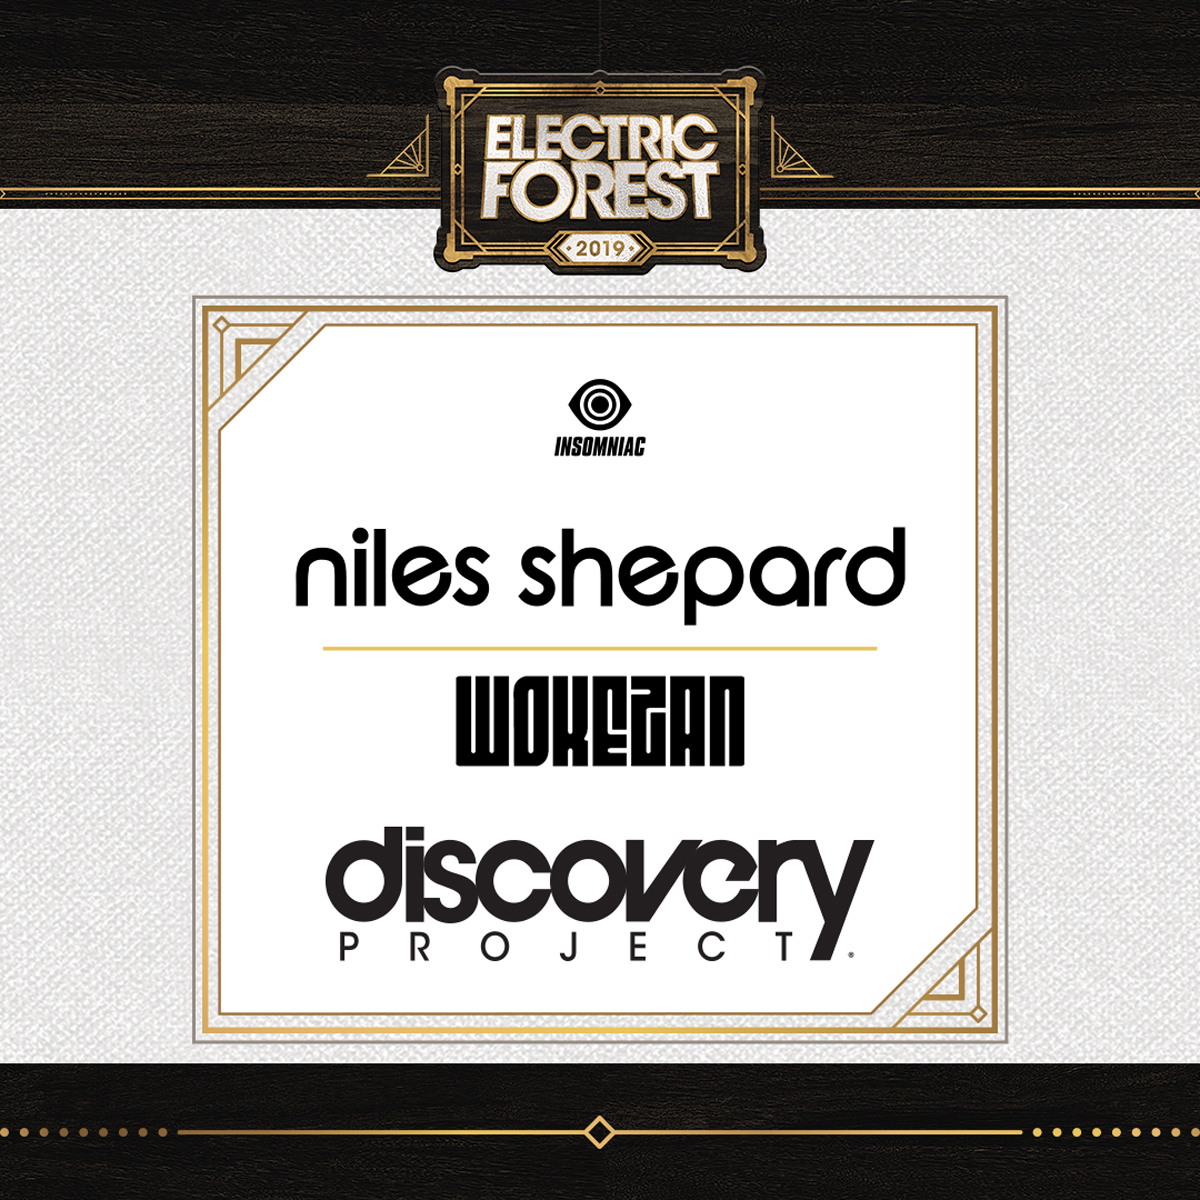 Meet the Selected Artists Playing at Electric Forest 2019